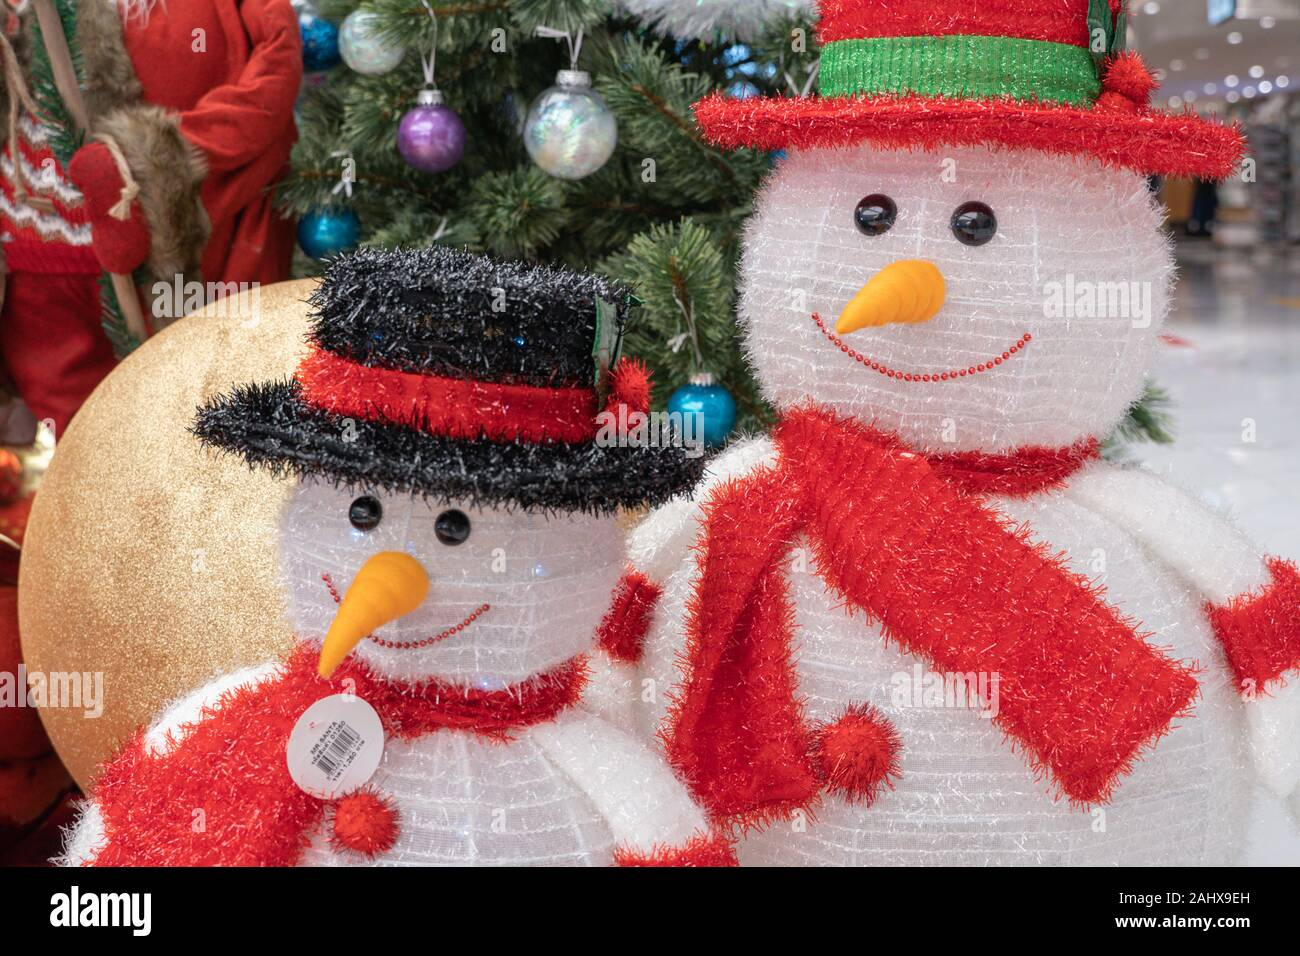 Christmas Decorations With Snowman Christmas Tree Background Happy New Year And Xmas Theme Stock Photo Alamy